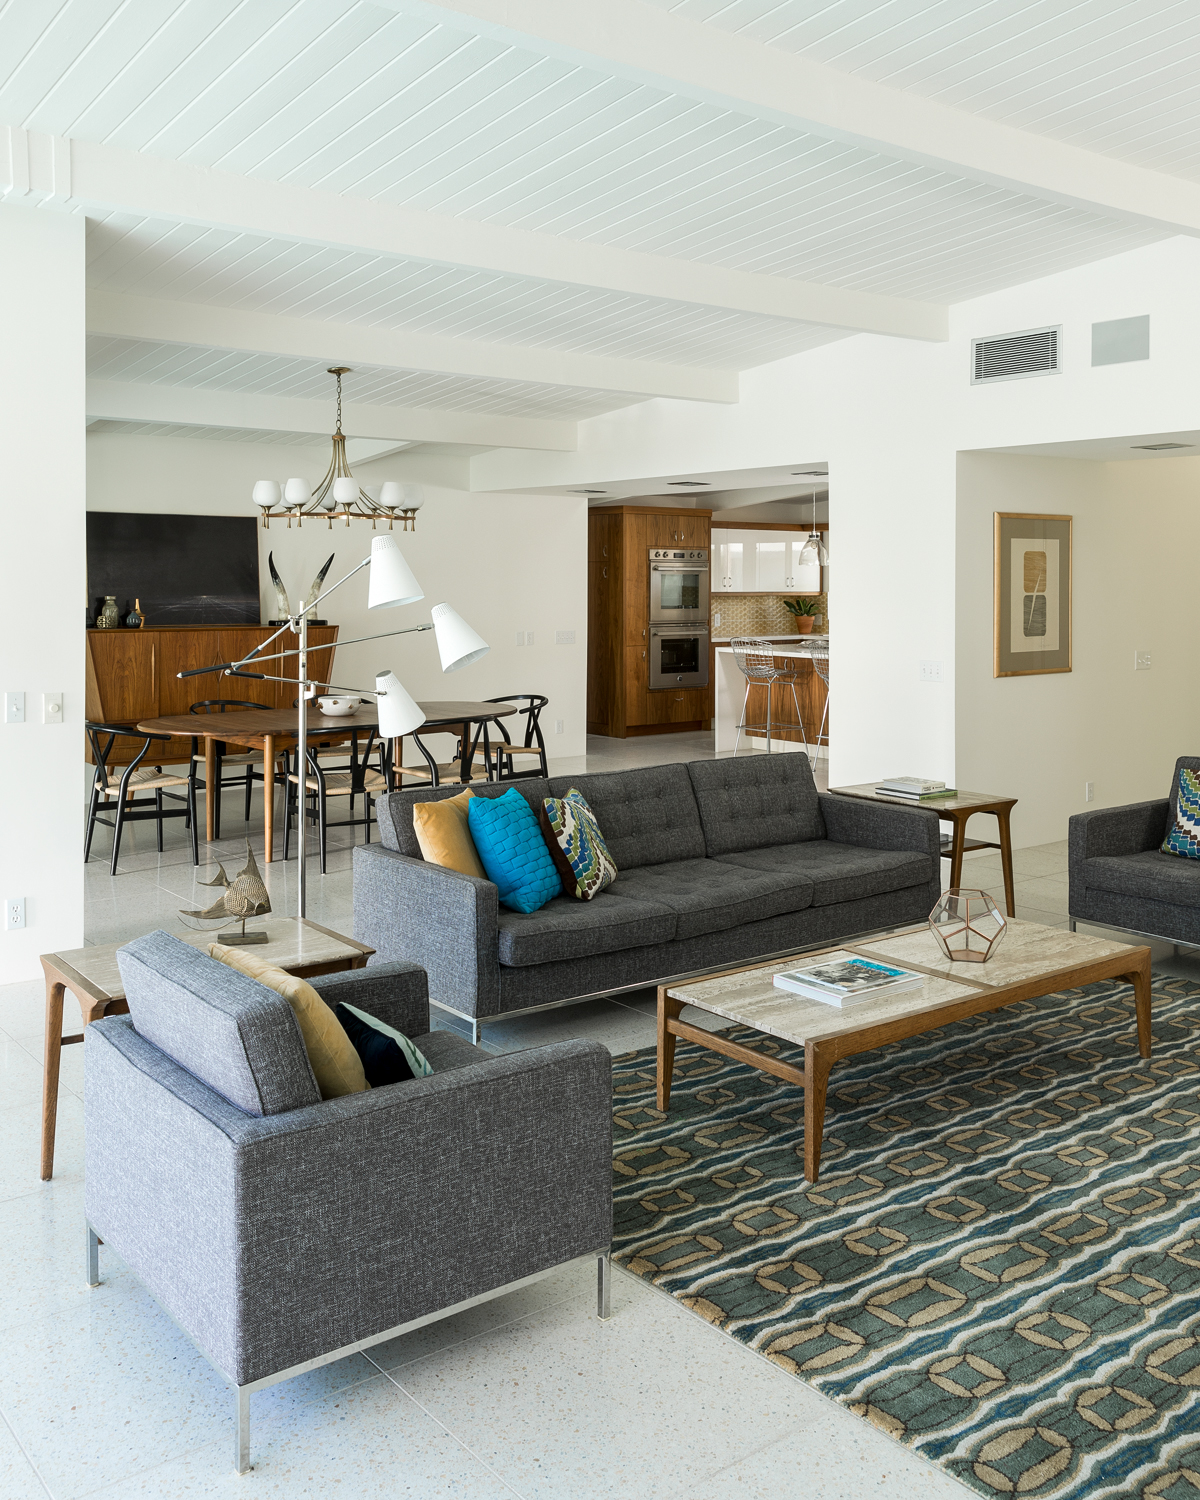 Volkswagen Dealers In Maine: Palm Springs Midcentury With Pool And Panoramic Views Asks